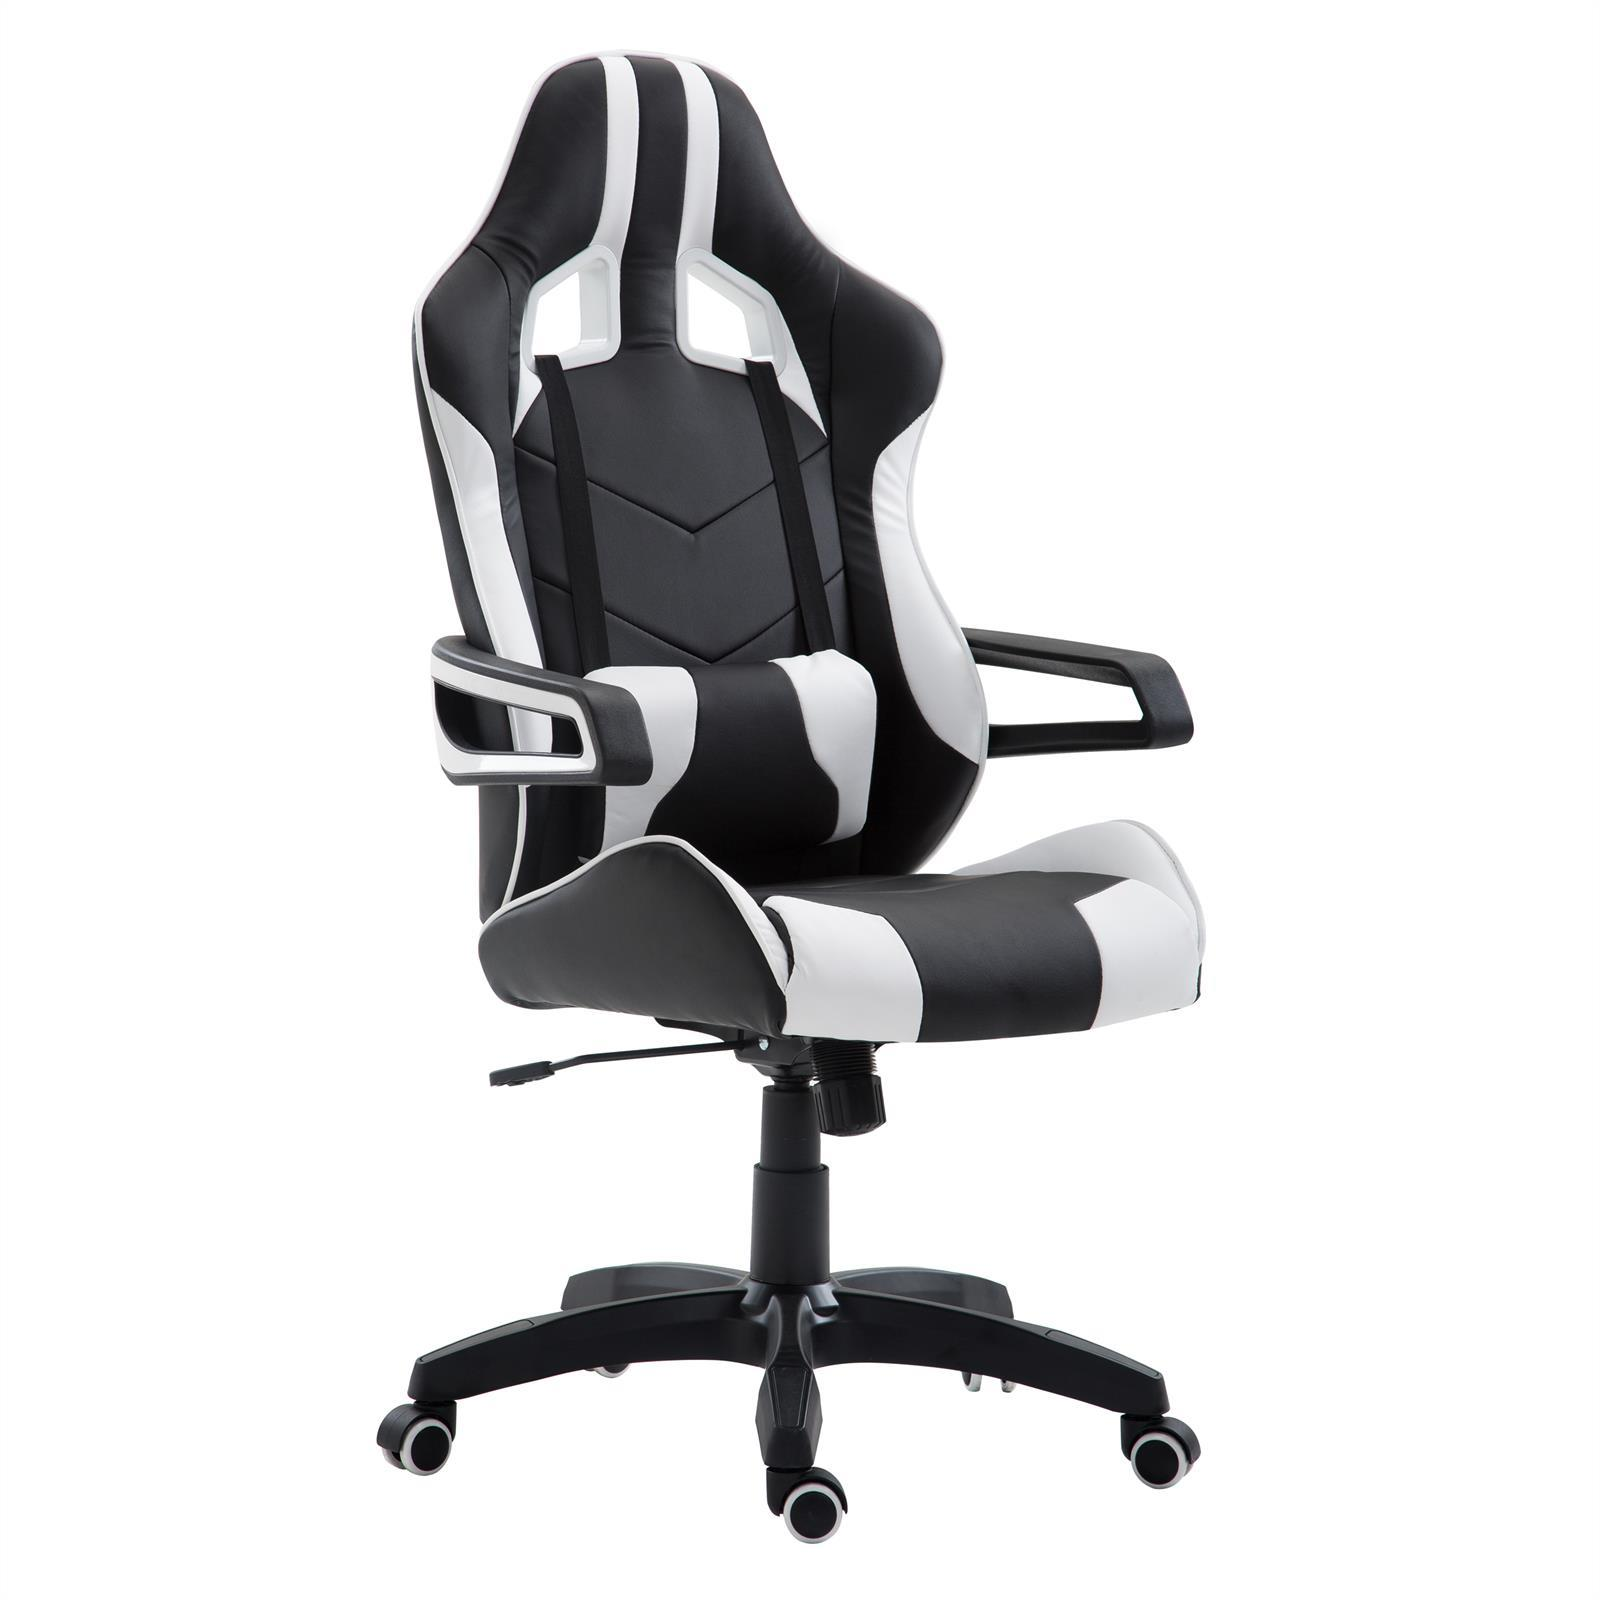 fauteuil de bureau gaming play noir et blanc mobil meubles. Black Bedroom Furniture Sets. Home Design Ideas